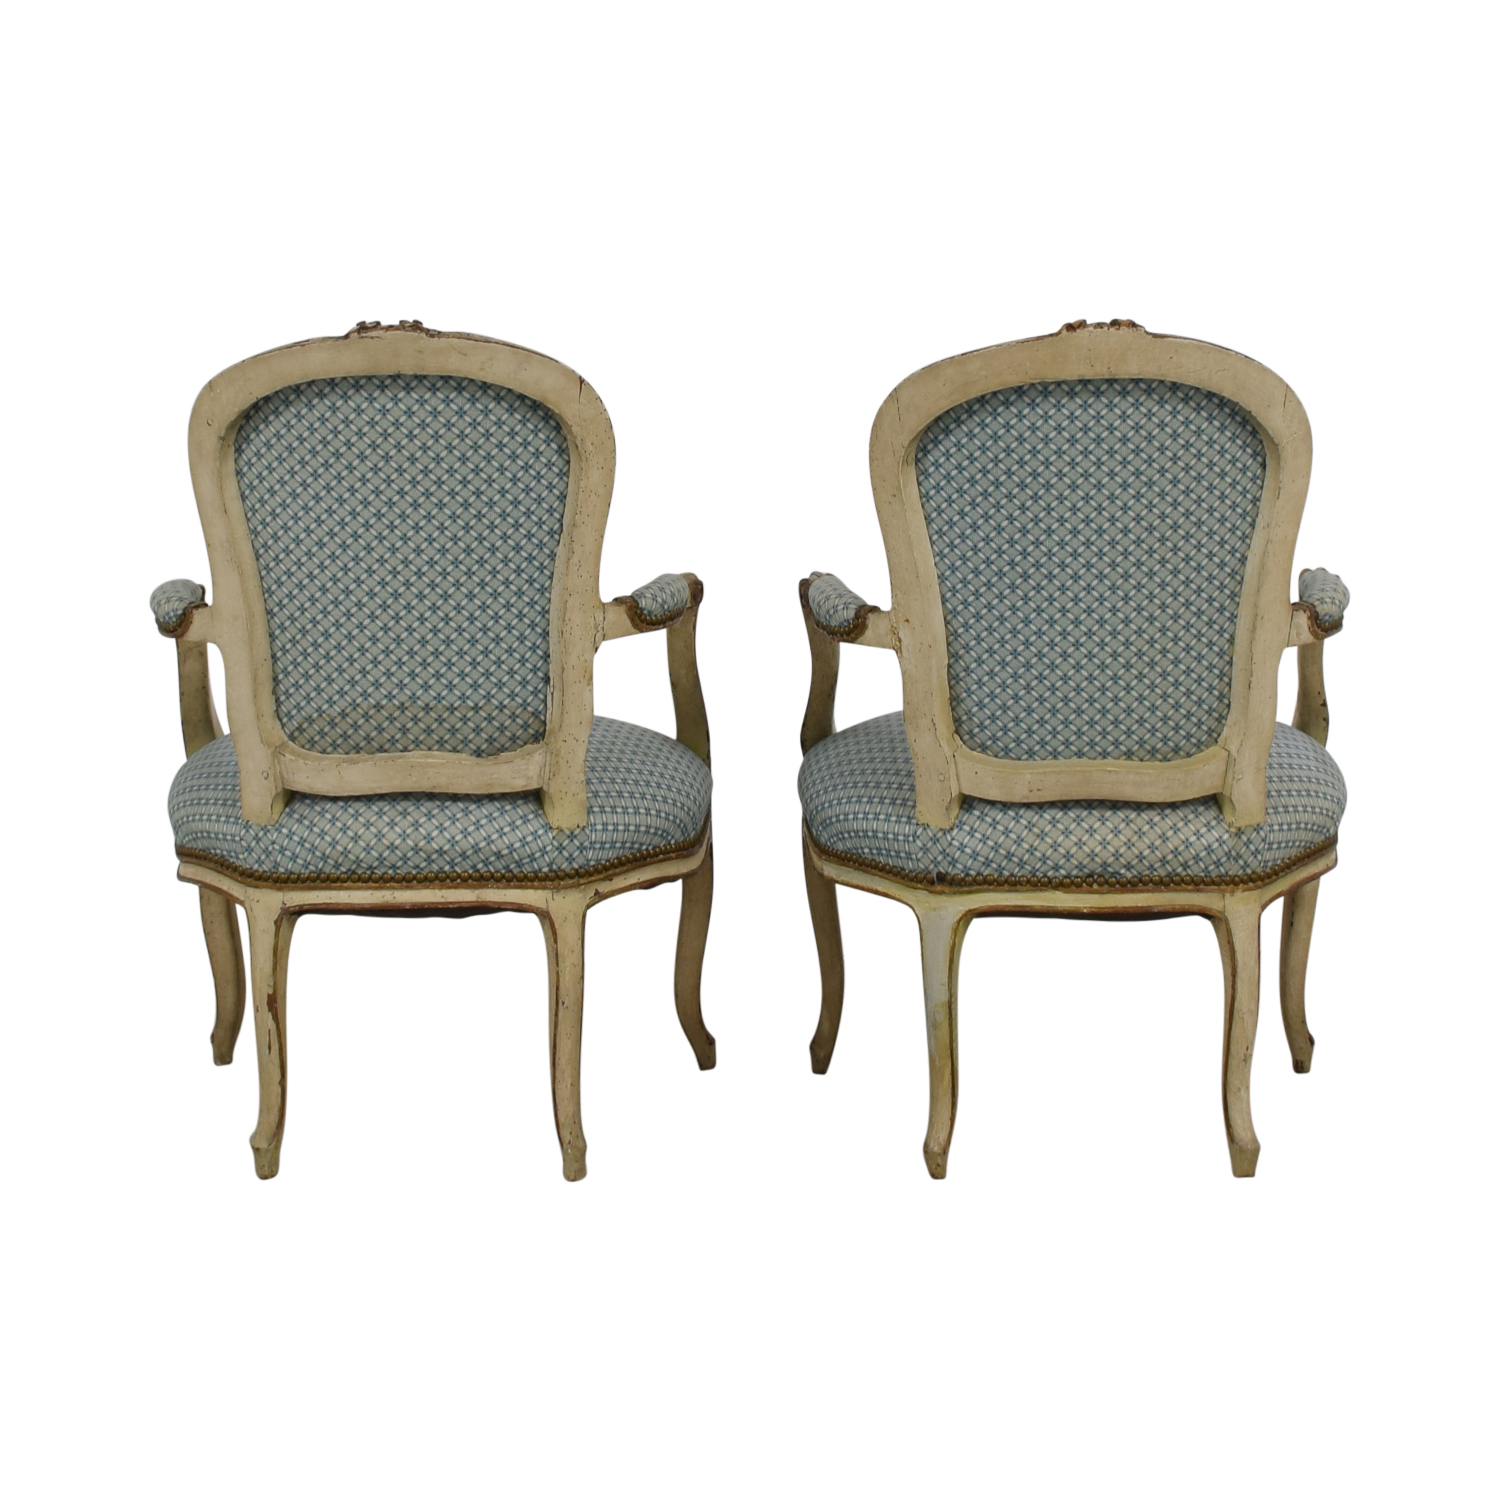 Furniture Masters Furniture Masters Blue and White Accent Chairs for sale